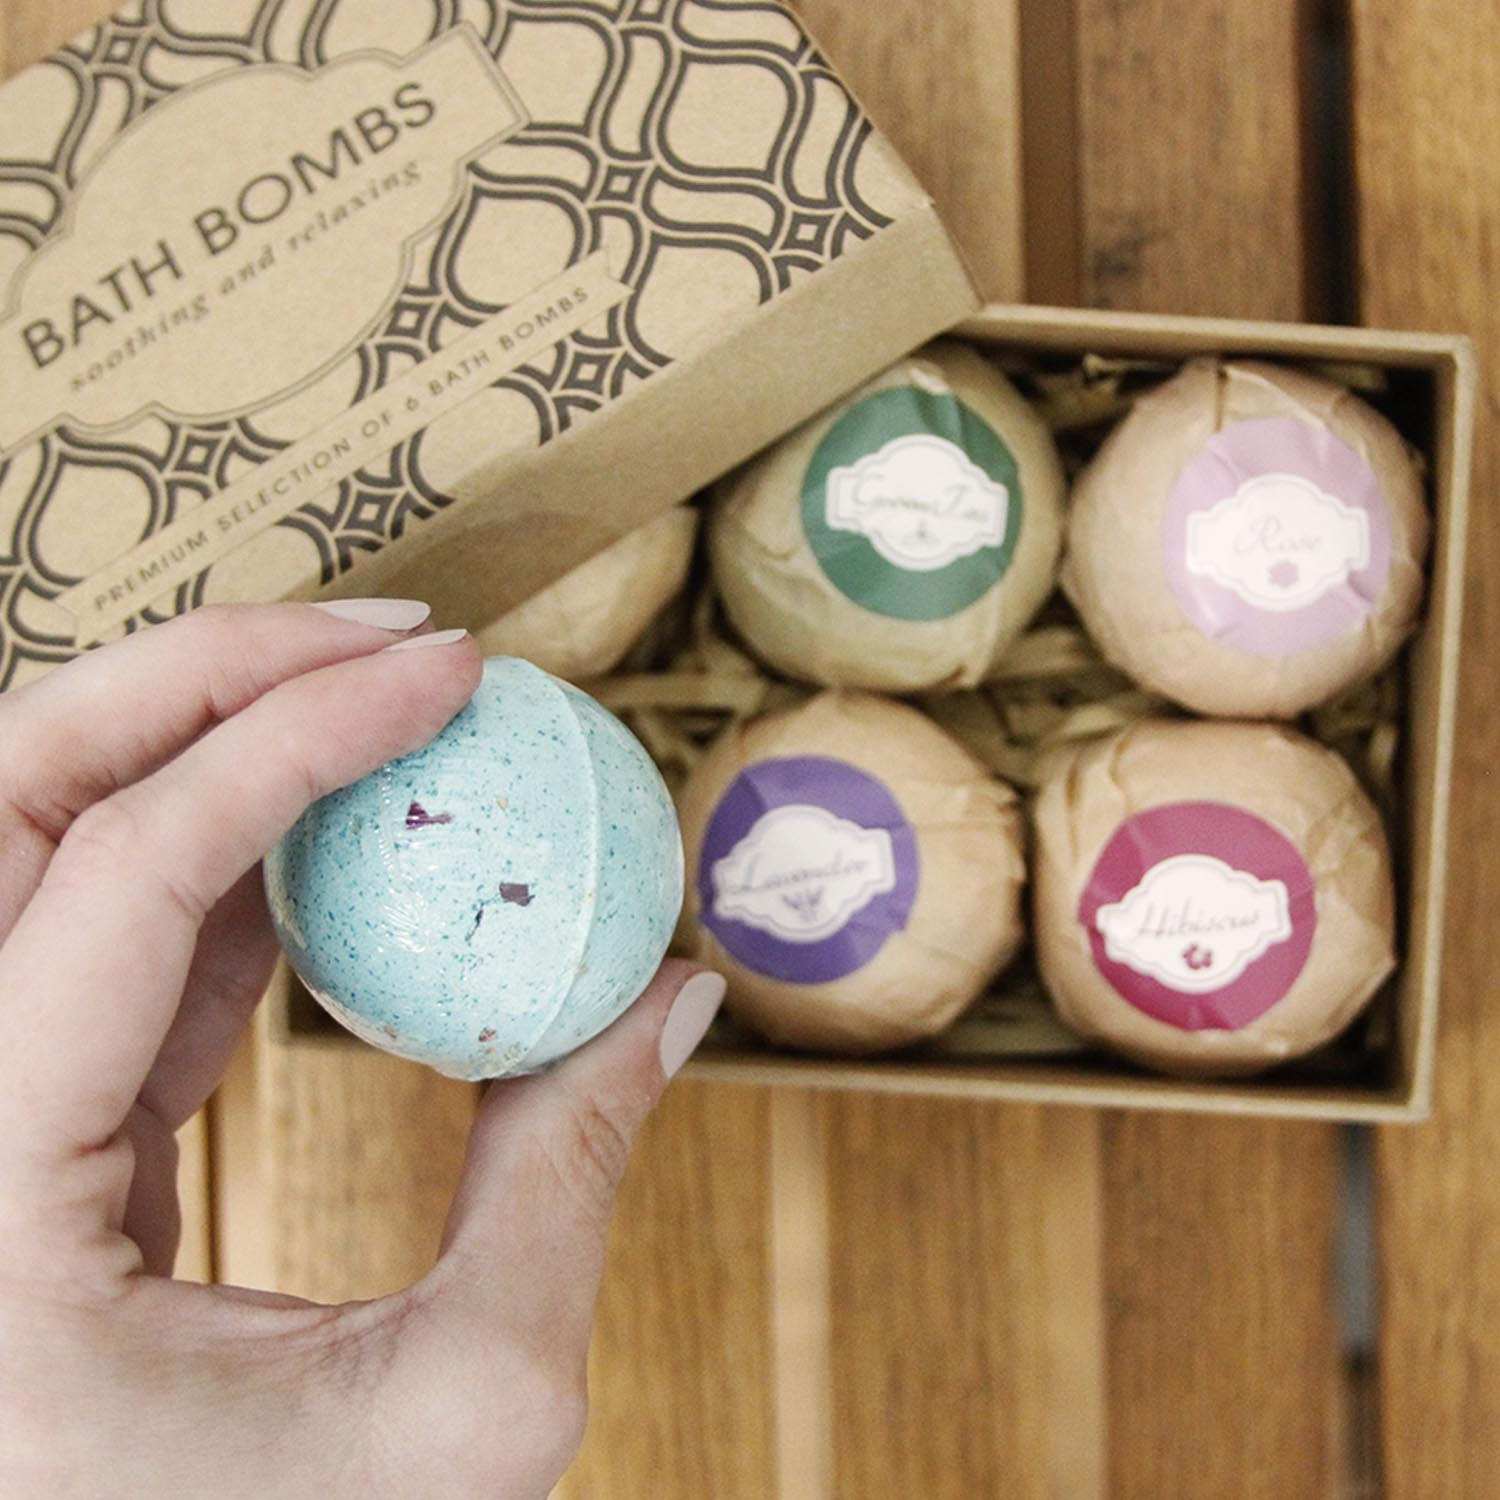 beautyfrizz bath bomb set